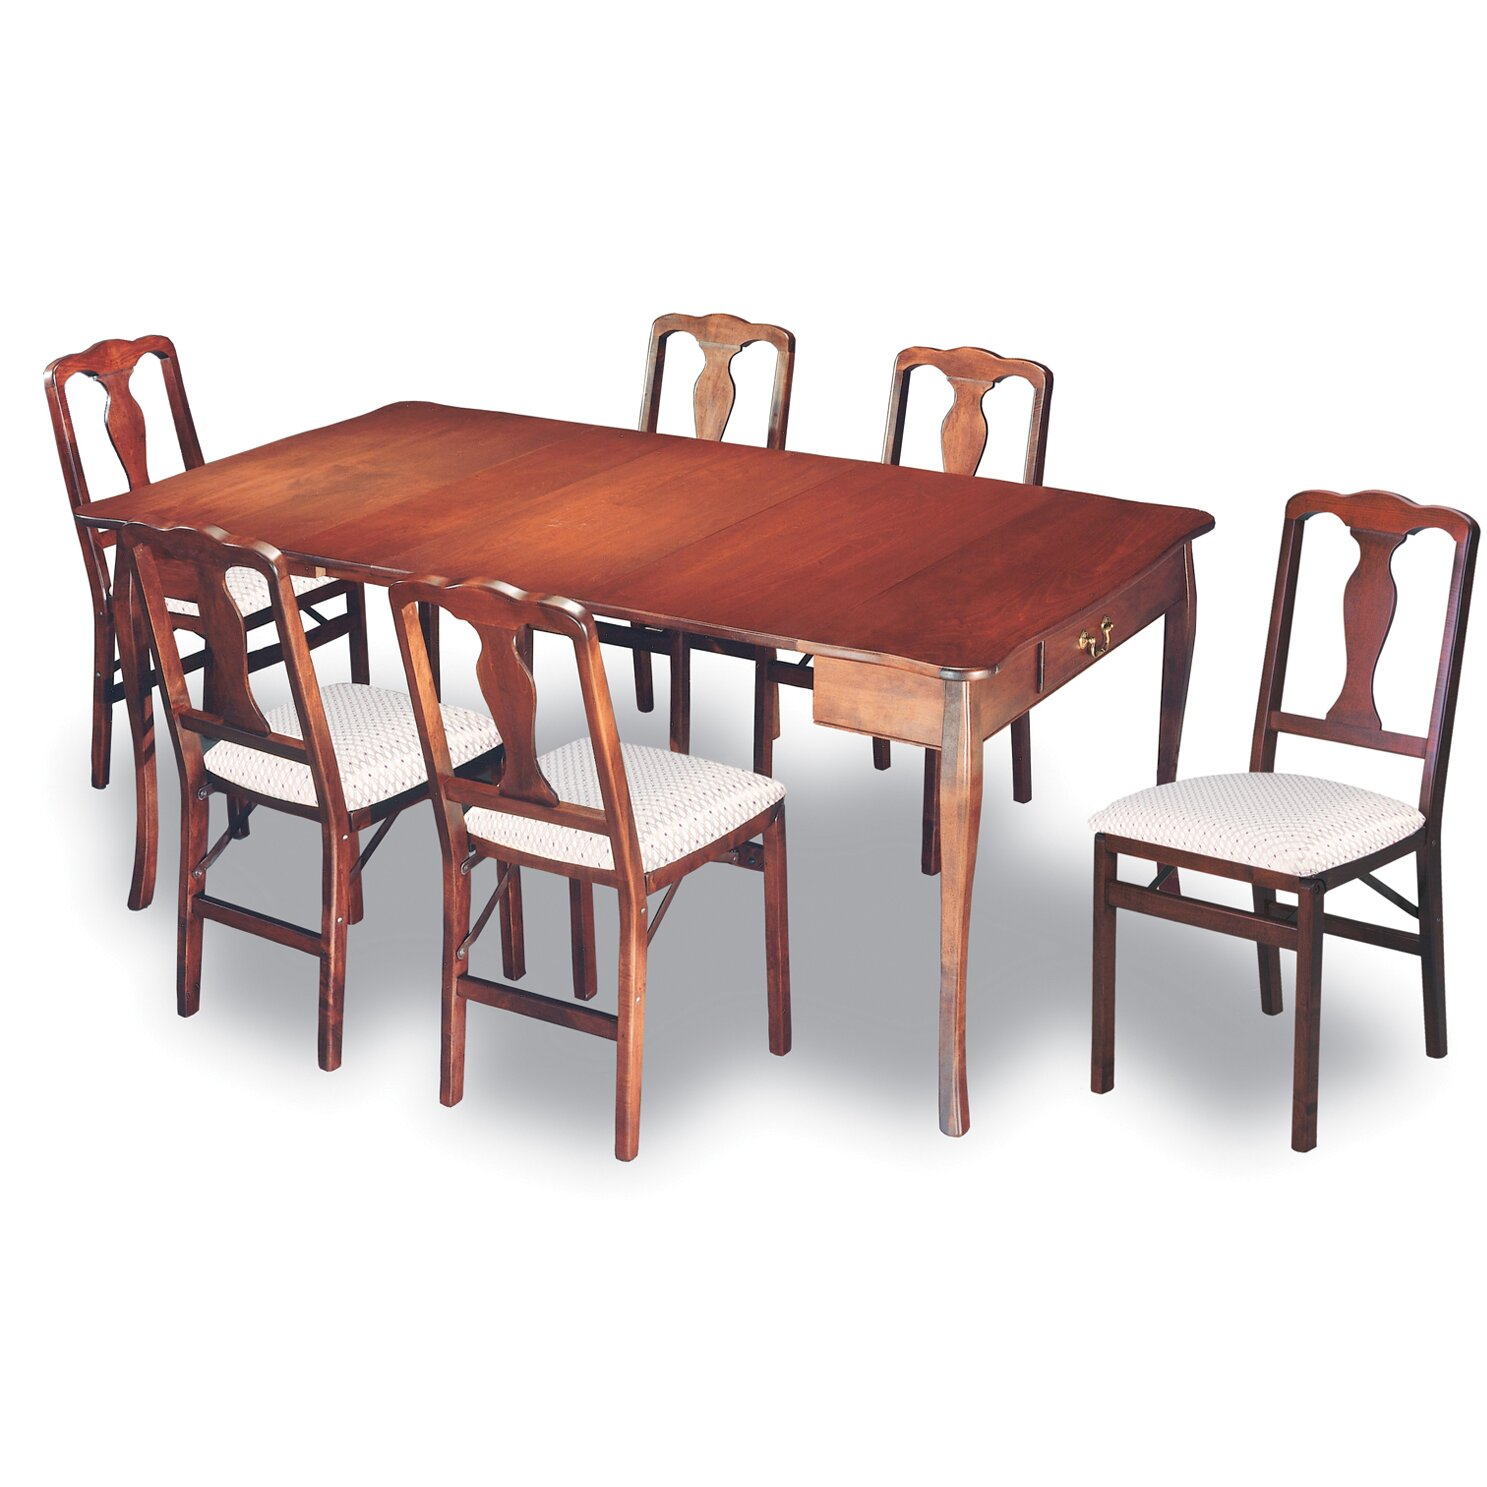 Stakmore traditional expanding dining table reviews for Traditional dining table with bench